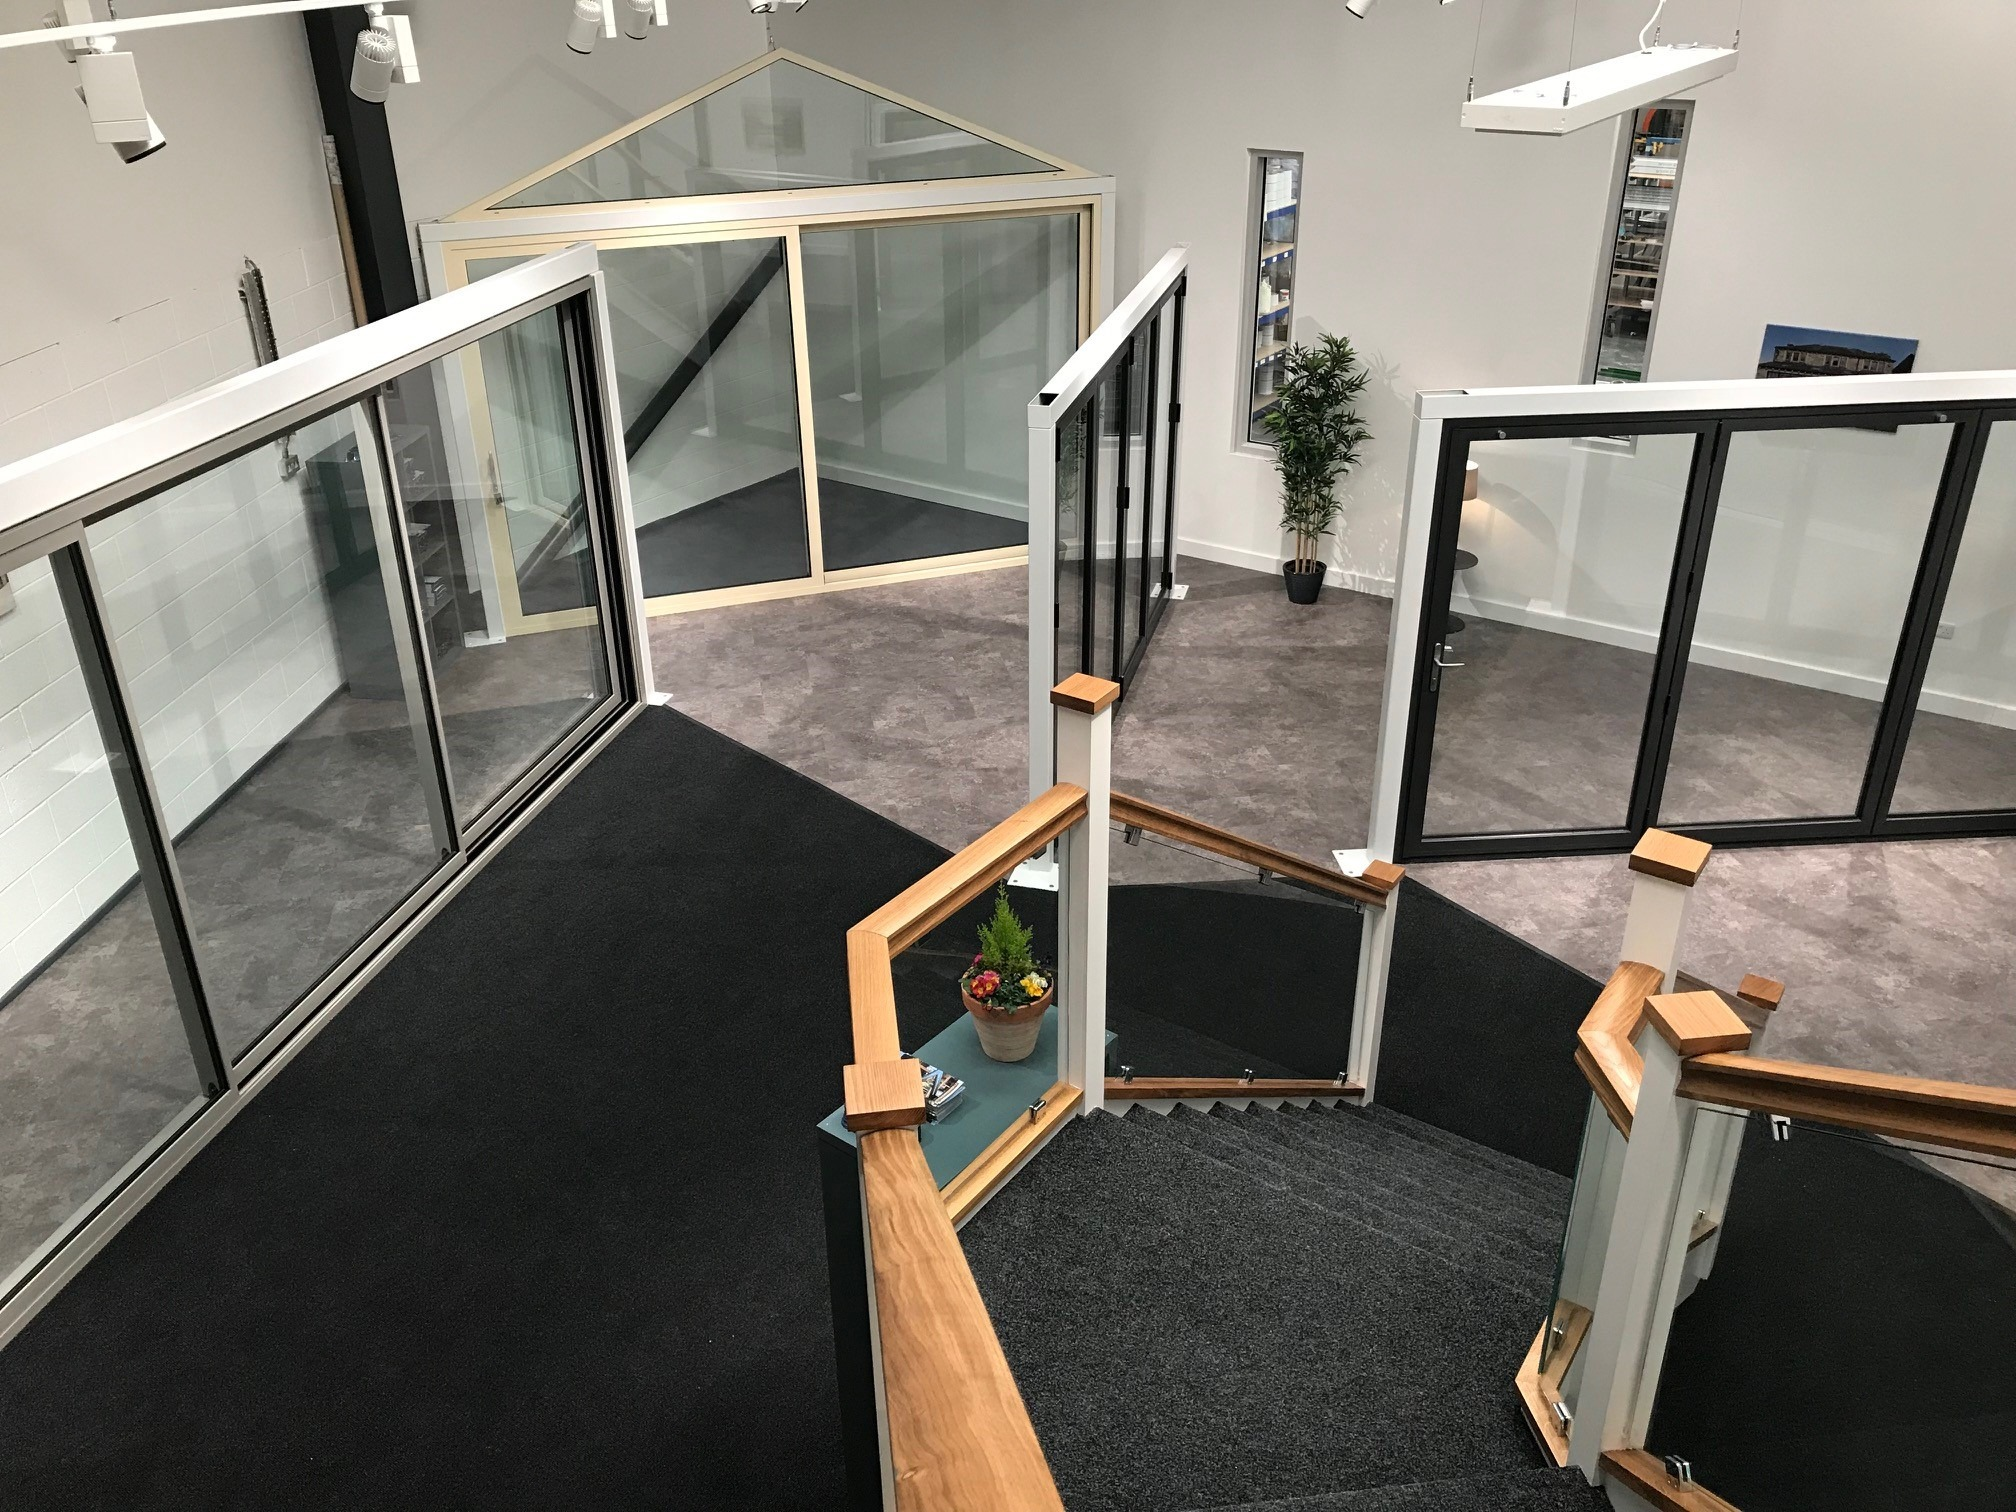 Clear View showroom in Huddersfield down steps